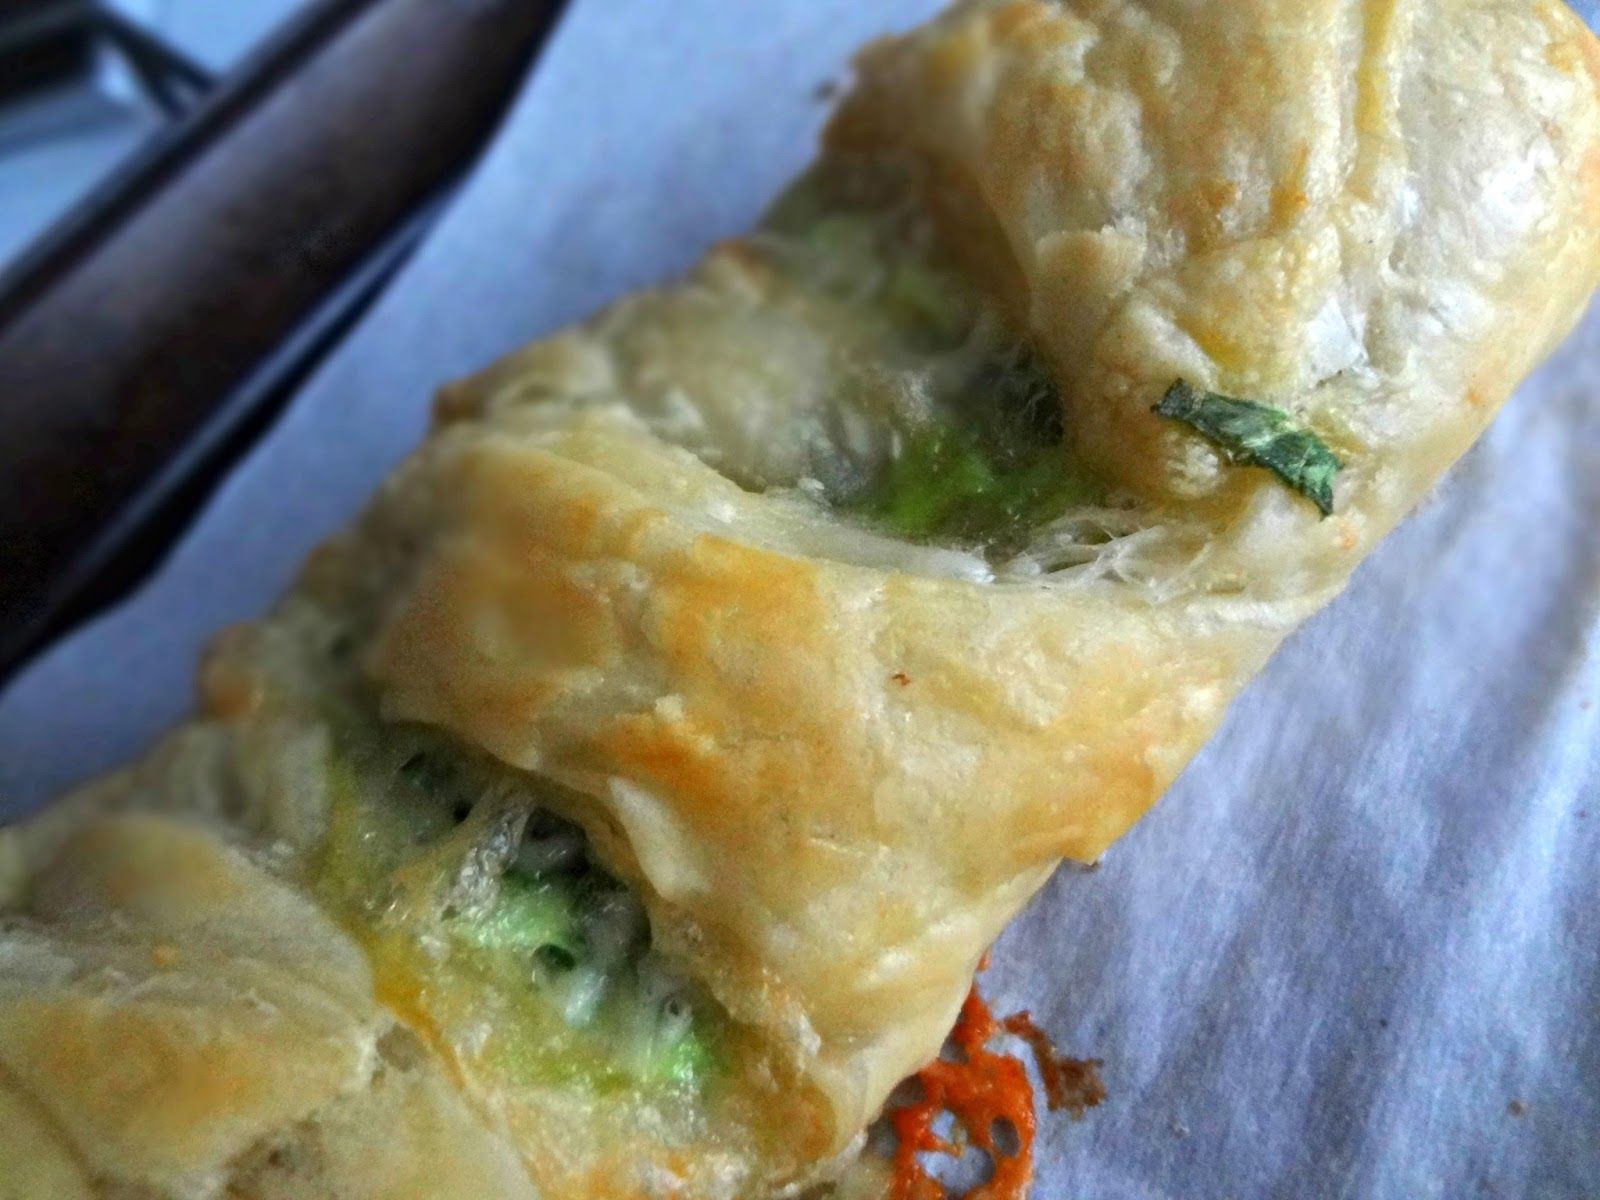 So...yeah, like... Meat Spinach Cheese Pastry